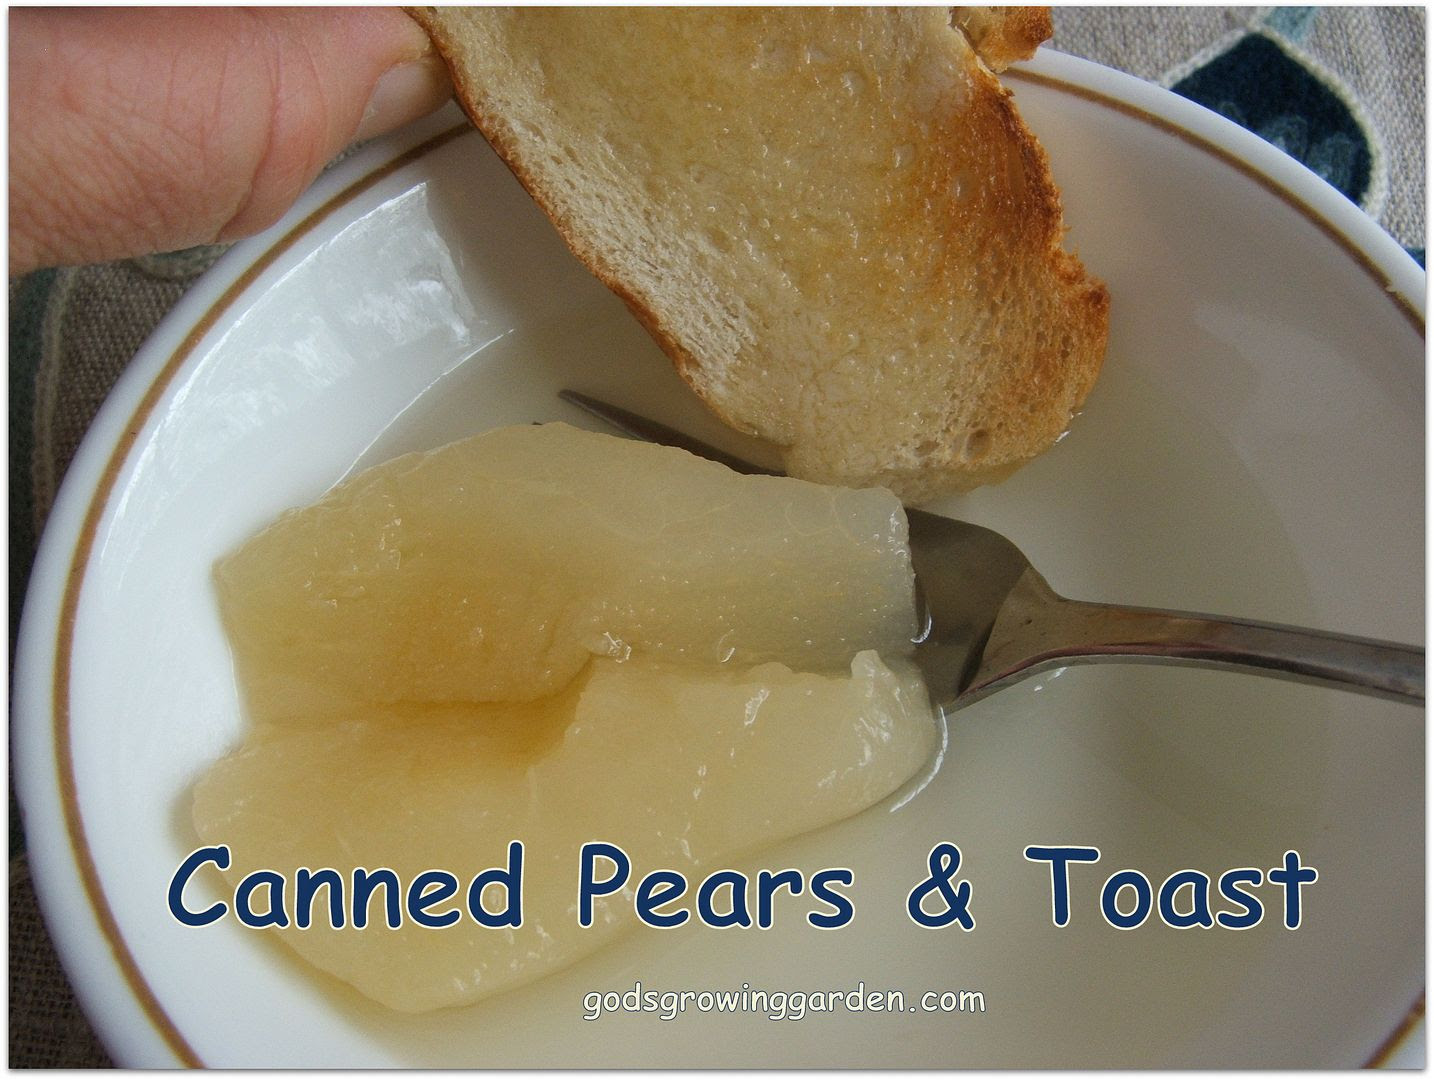 Canned Pears & Toast by Angie Ouellette-Tower for godsgrowinggarden.com photo 006_zpsaf5eb6cd.jpg